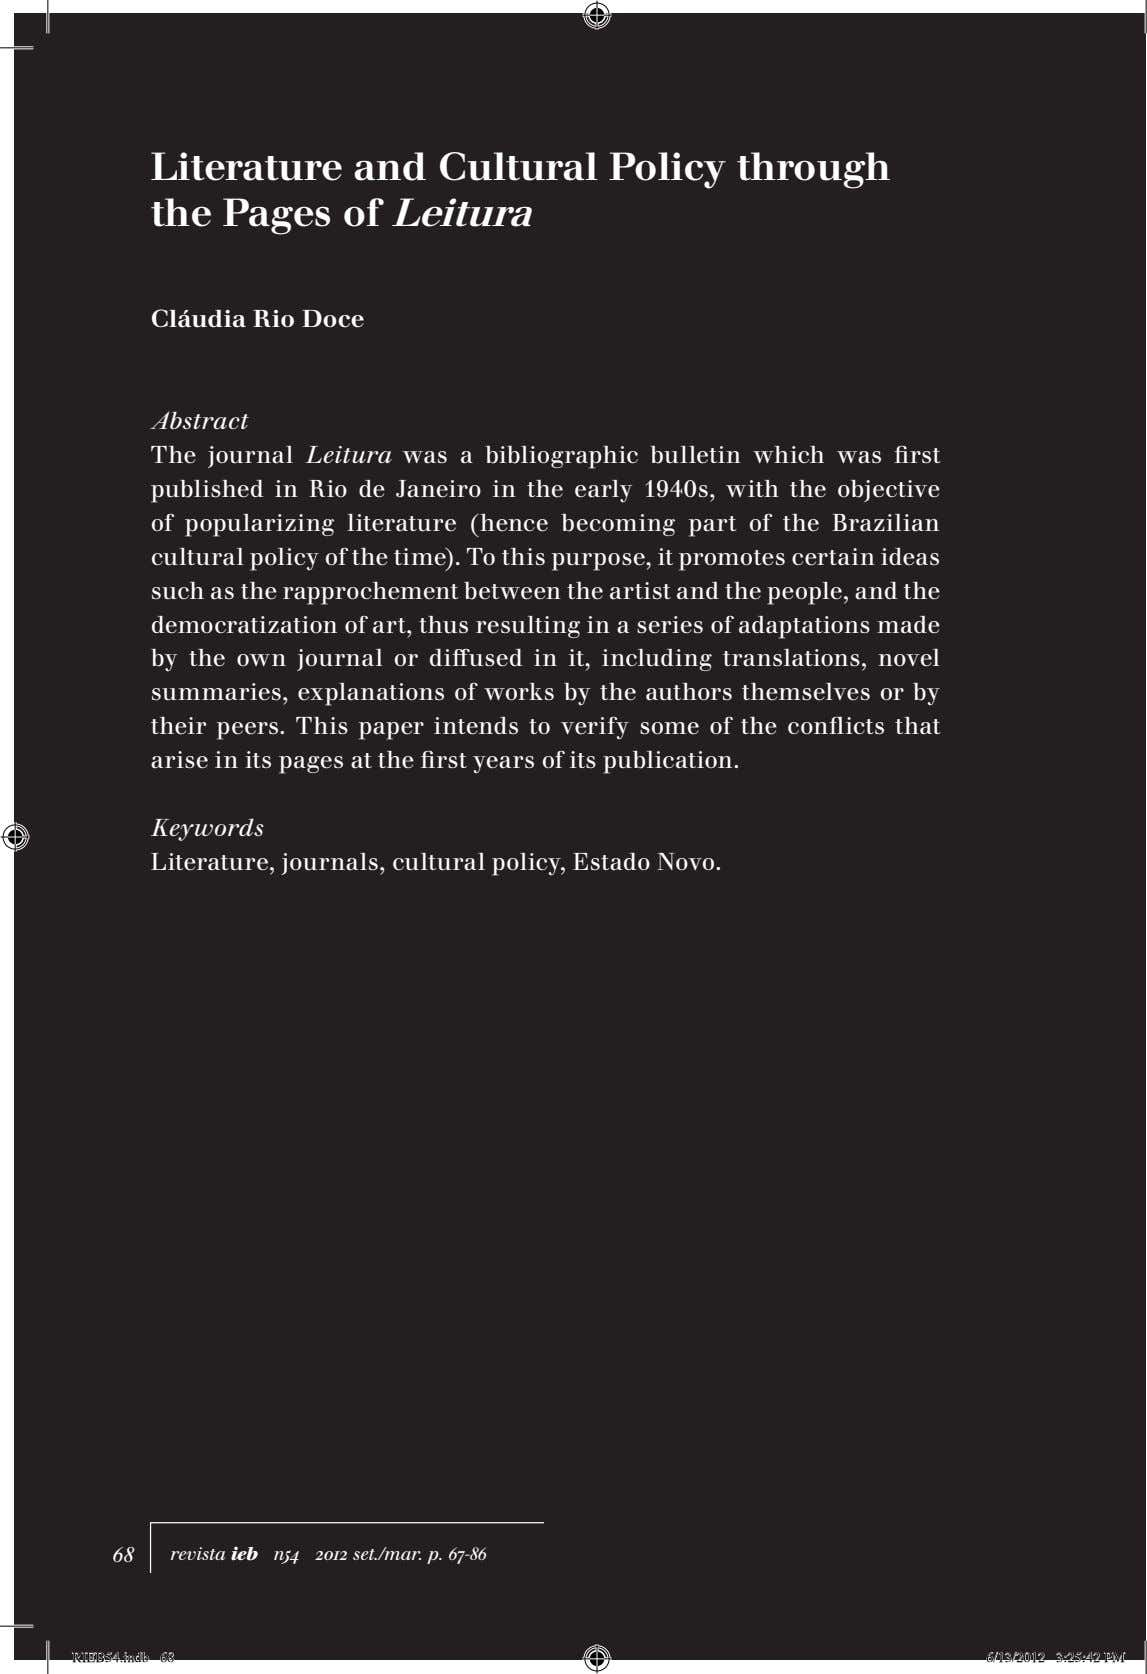 Literature and Cultural Policy through the Pages of Leitura Cláudia Rio Doce Abstract The journal